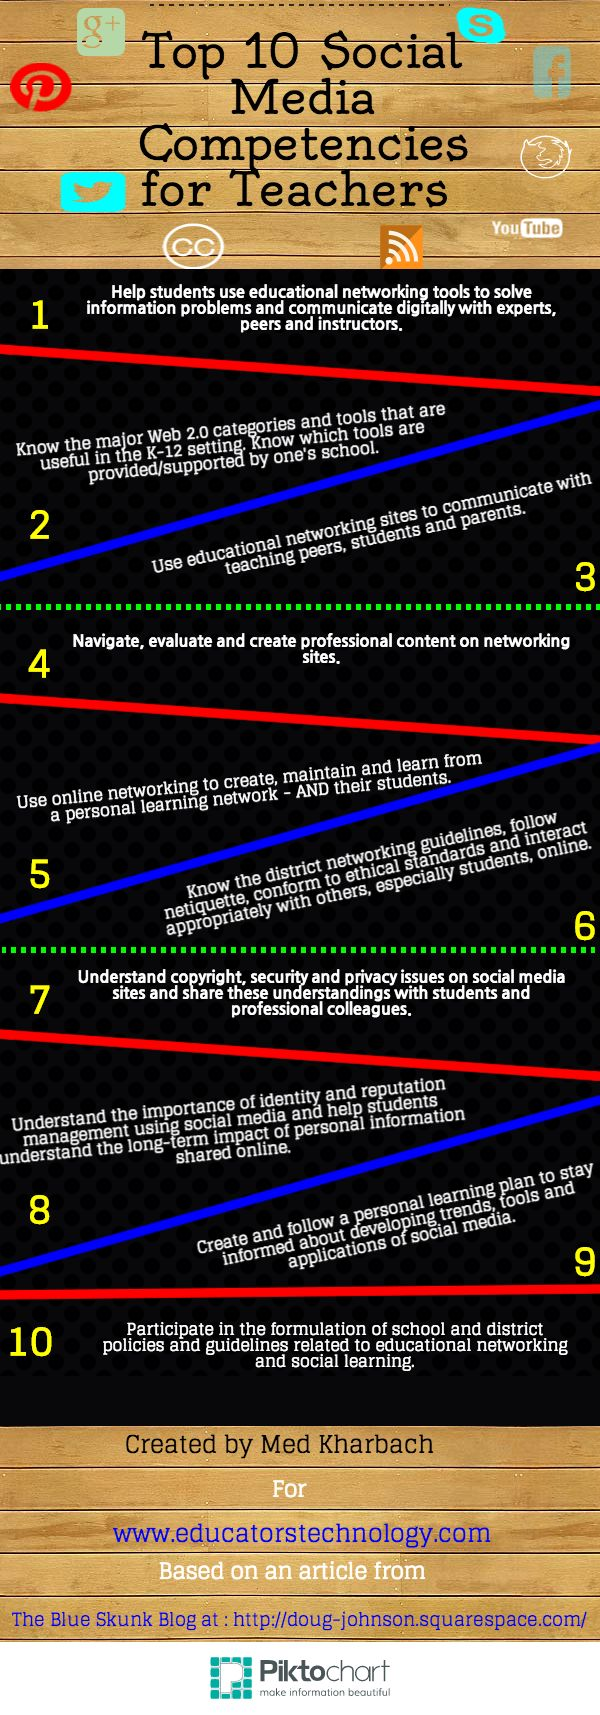 The Top 10 Social Media Competencies for Teachers